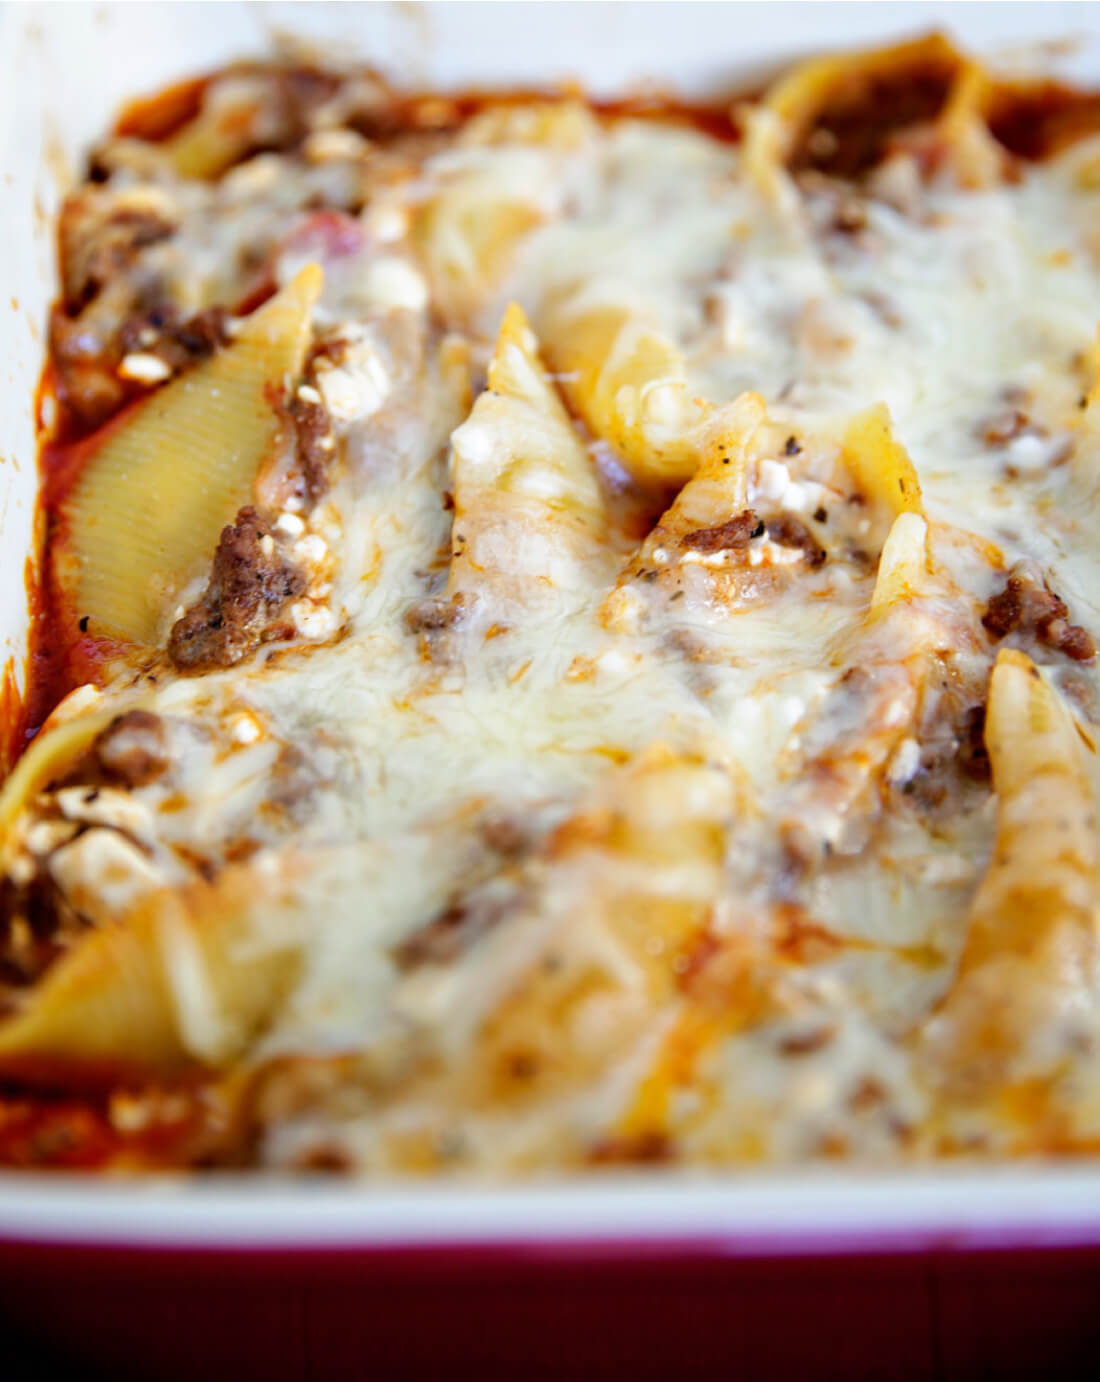 Stuffed Shells Recipe - an easy recipe that can be made ahead and your whole family will love it!